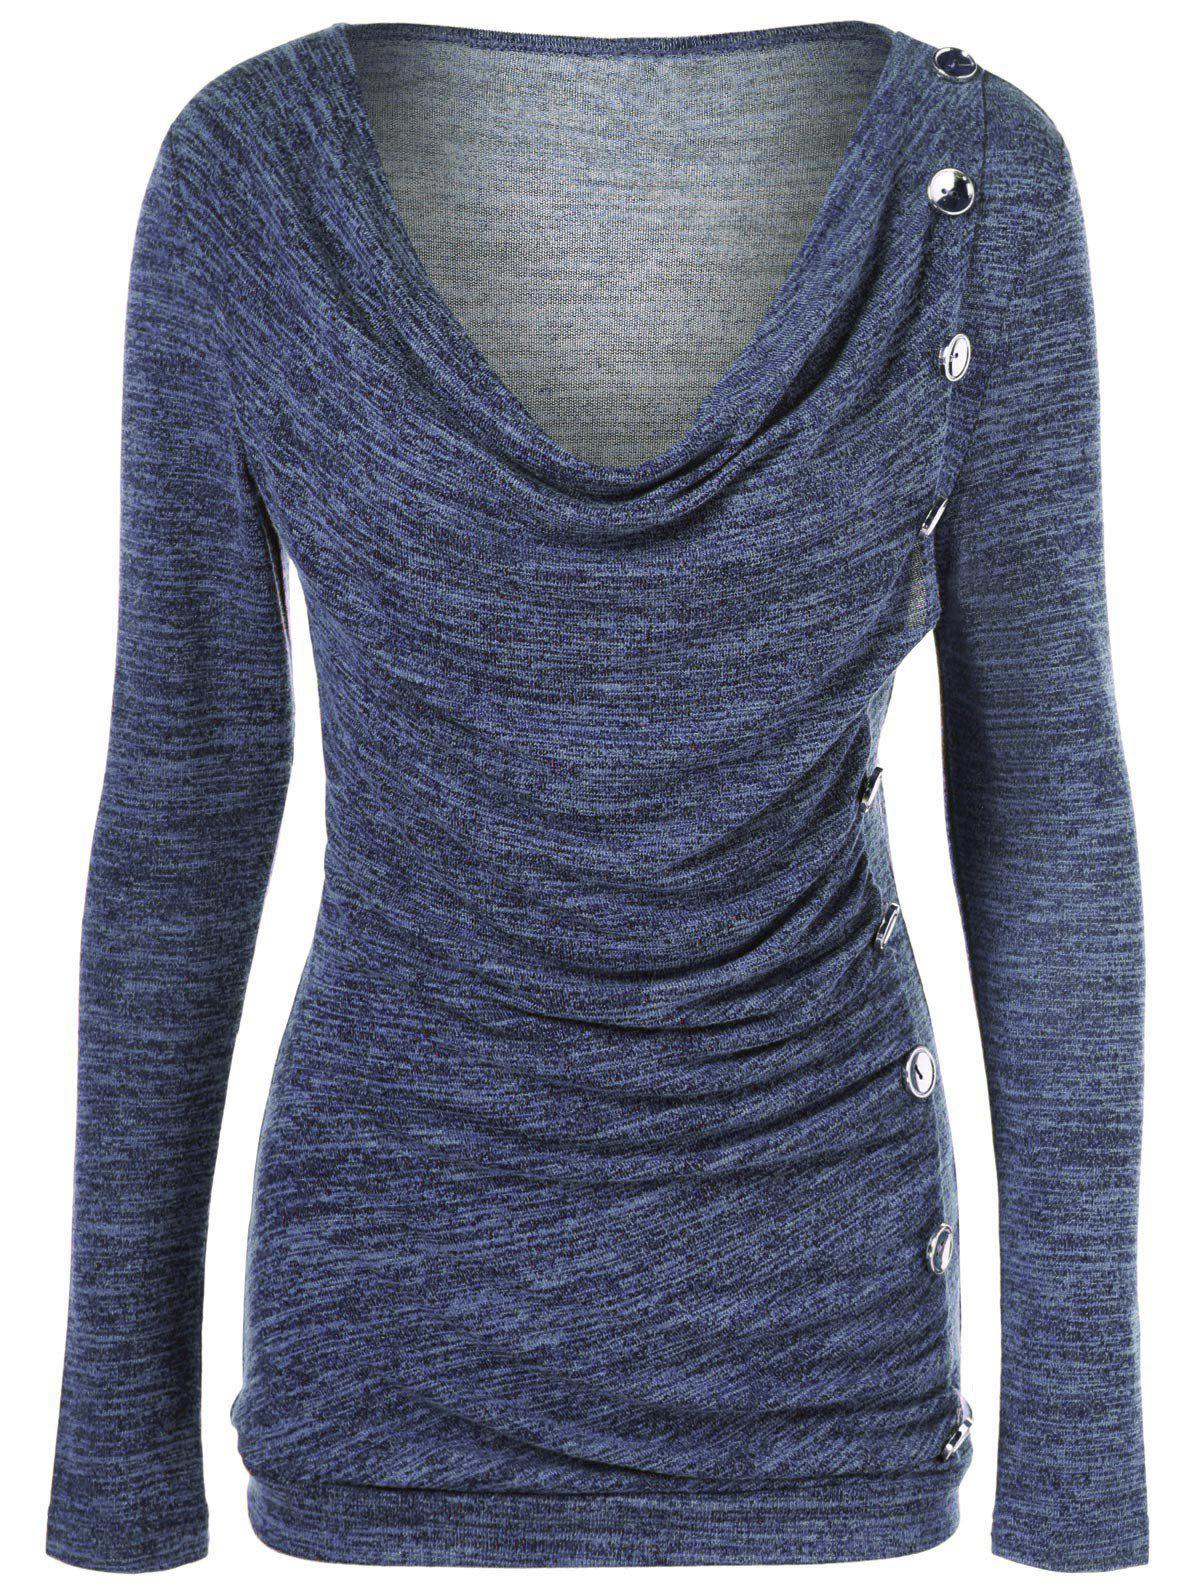 Side Button Cowl Neck Knitted Long Sleeve Sweater - PURPLISH BLUE M